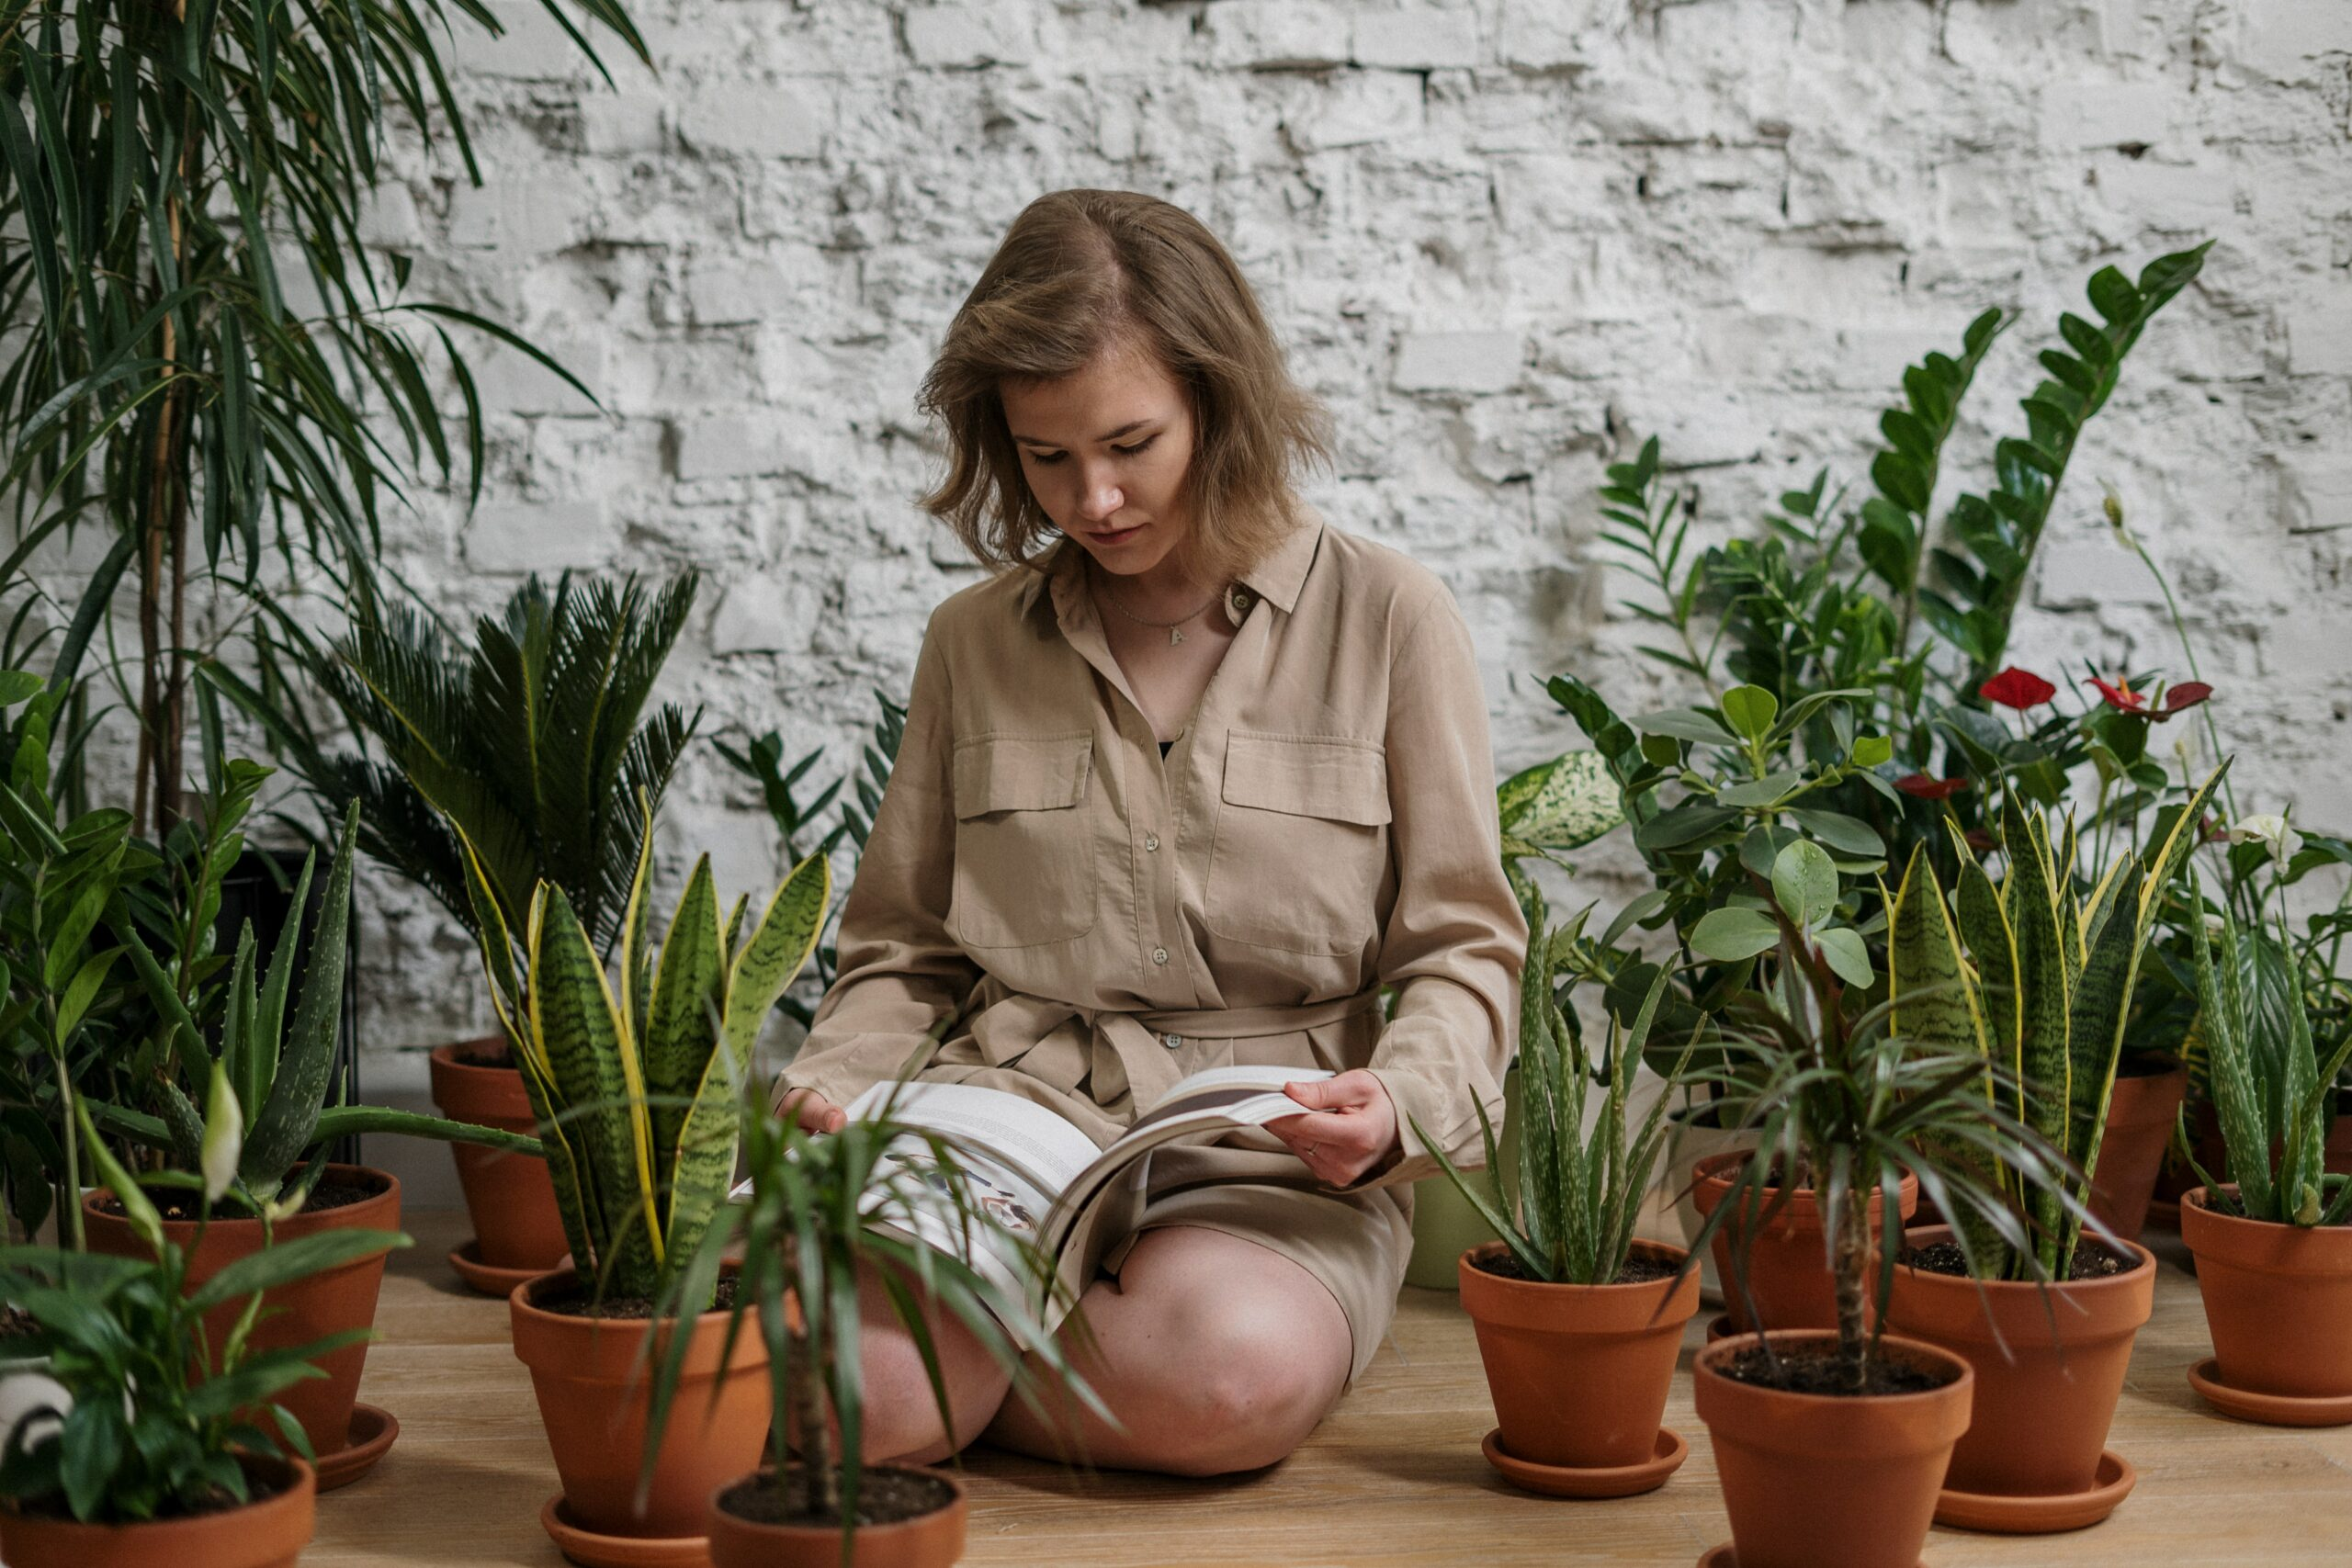 book about plants